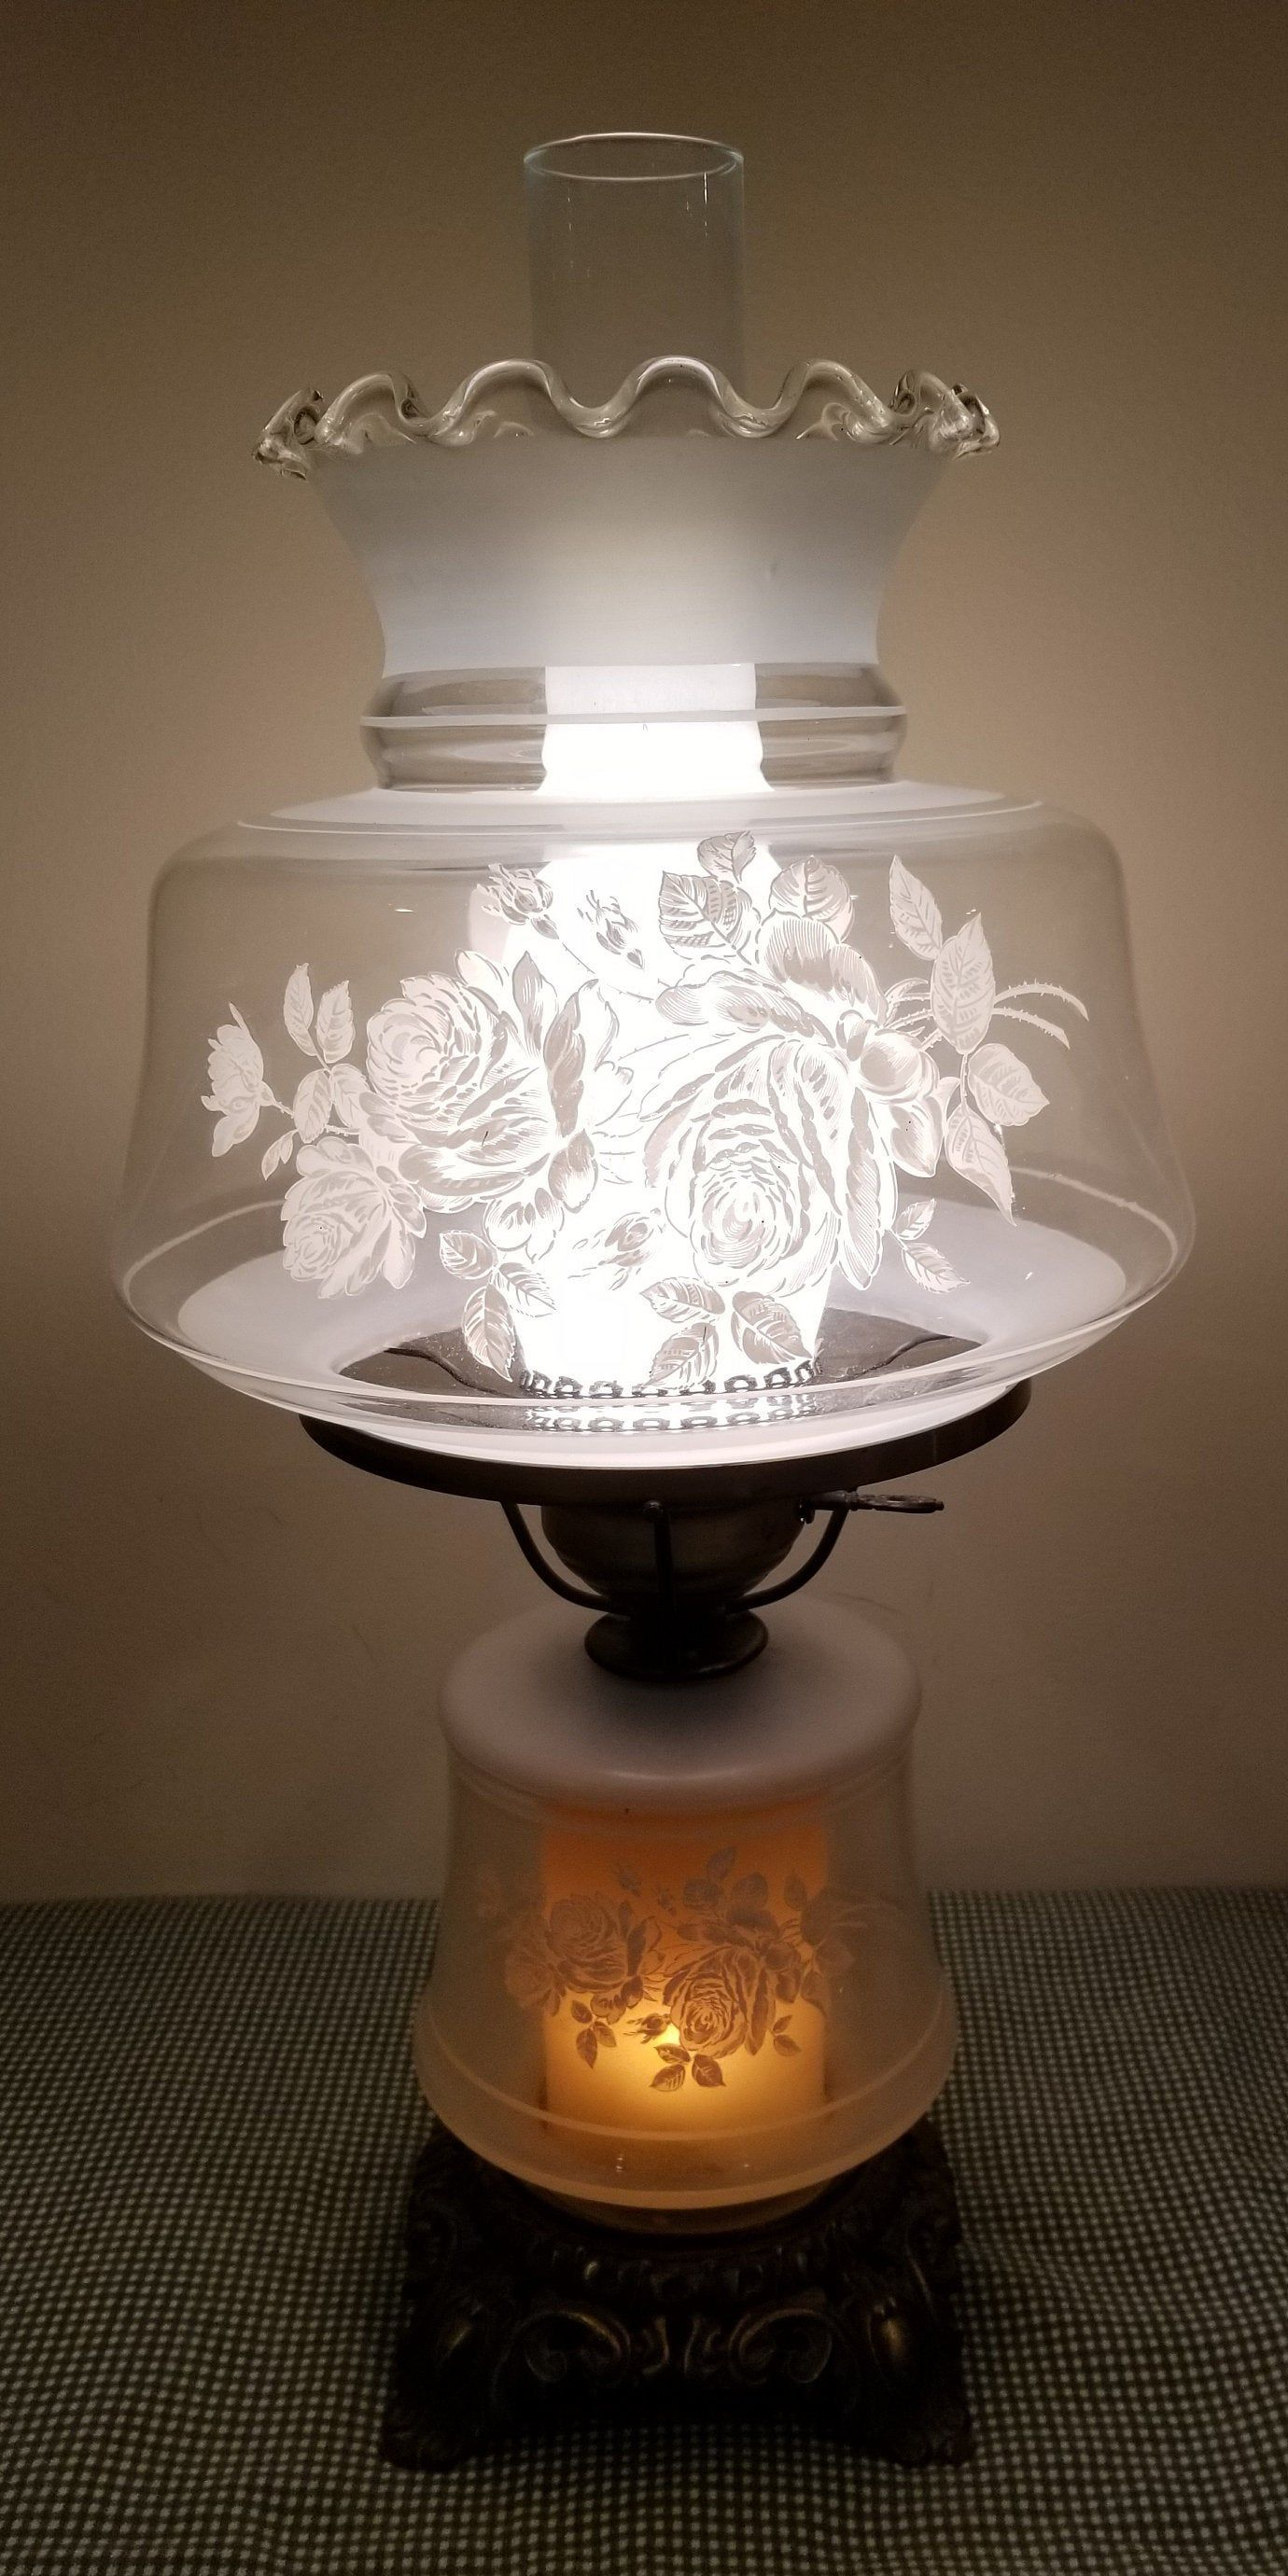 Vintage Gwtw Gone With The Wind Electric Table Hurricane Lamp Light Clear Glass White Frost Flowers And Chimney Ruffle Scalloped Top Hurricane Lamps Glass Hurricane Lamps Lamp